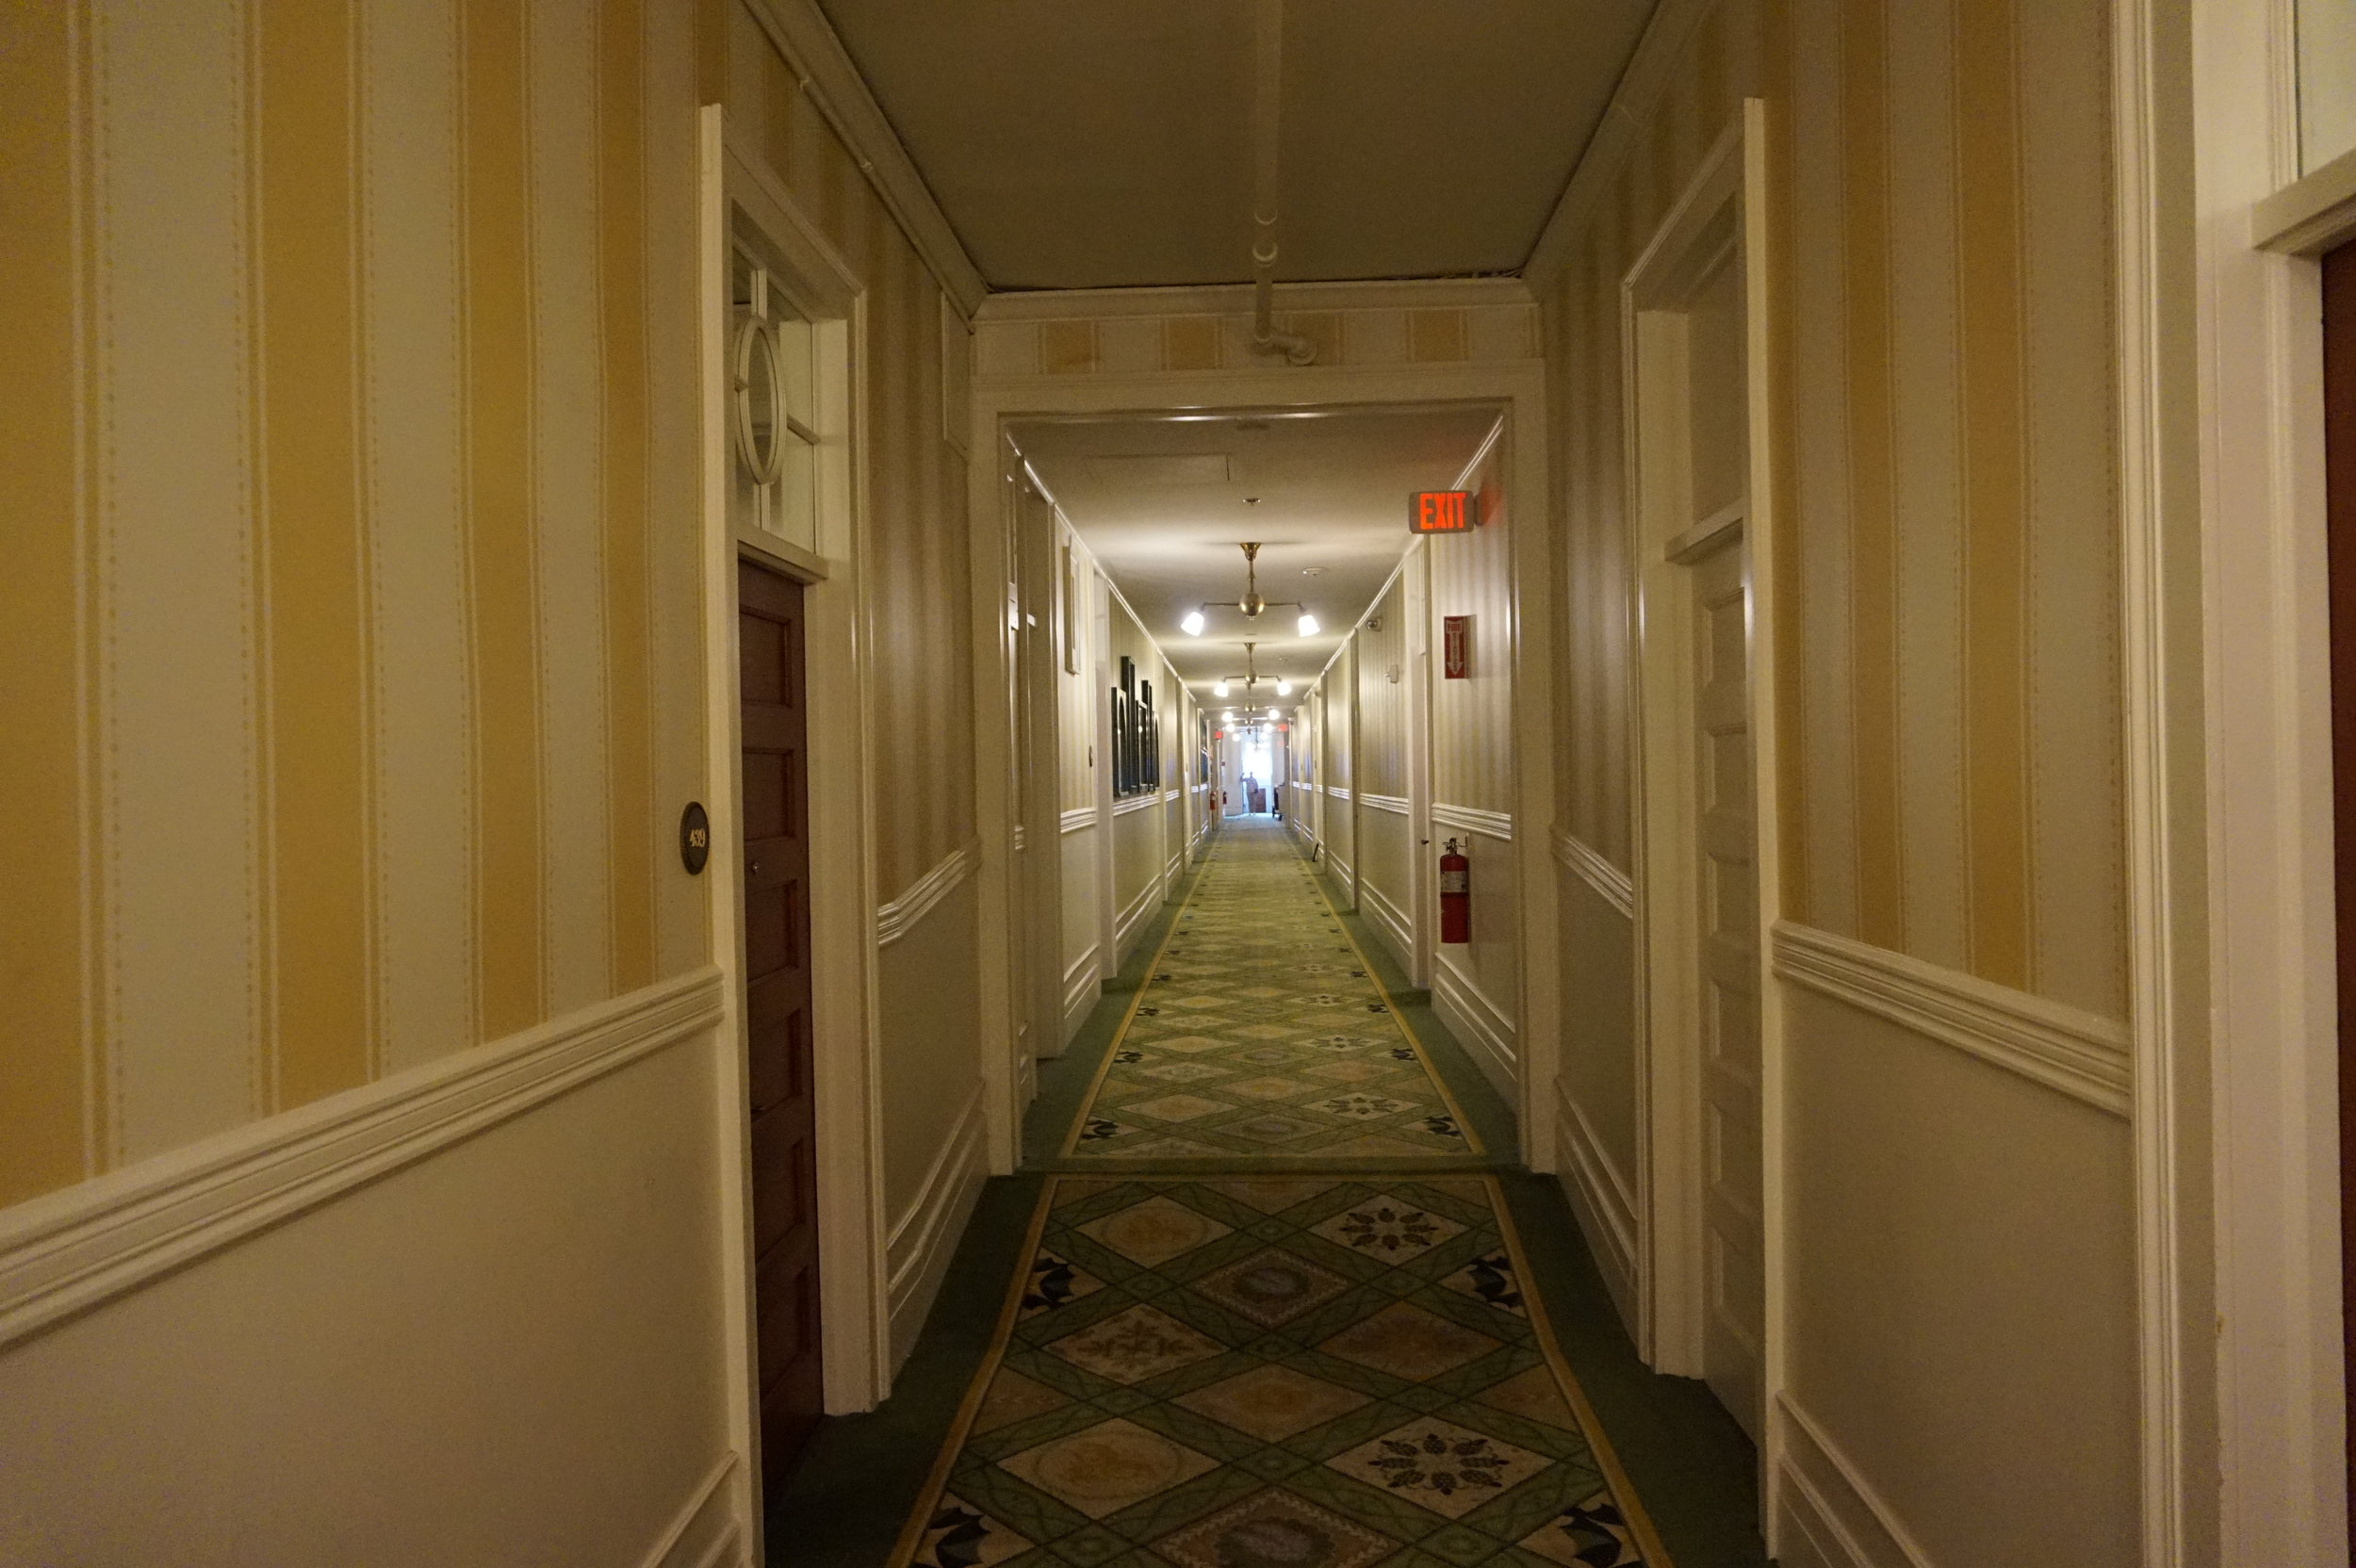 At one time there was a step where the hall gets higher